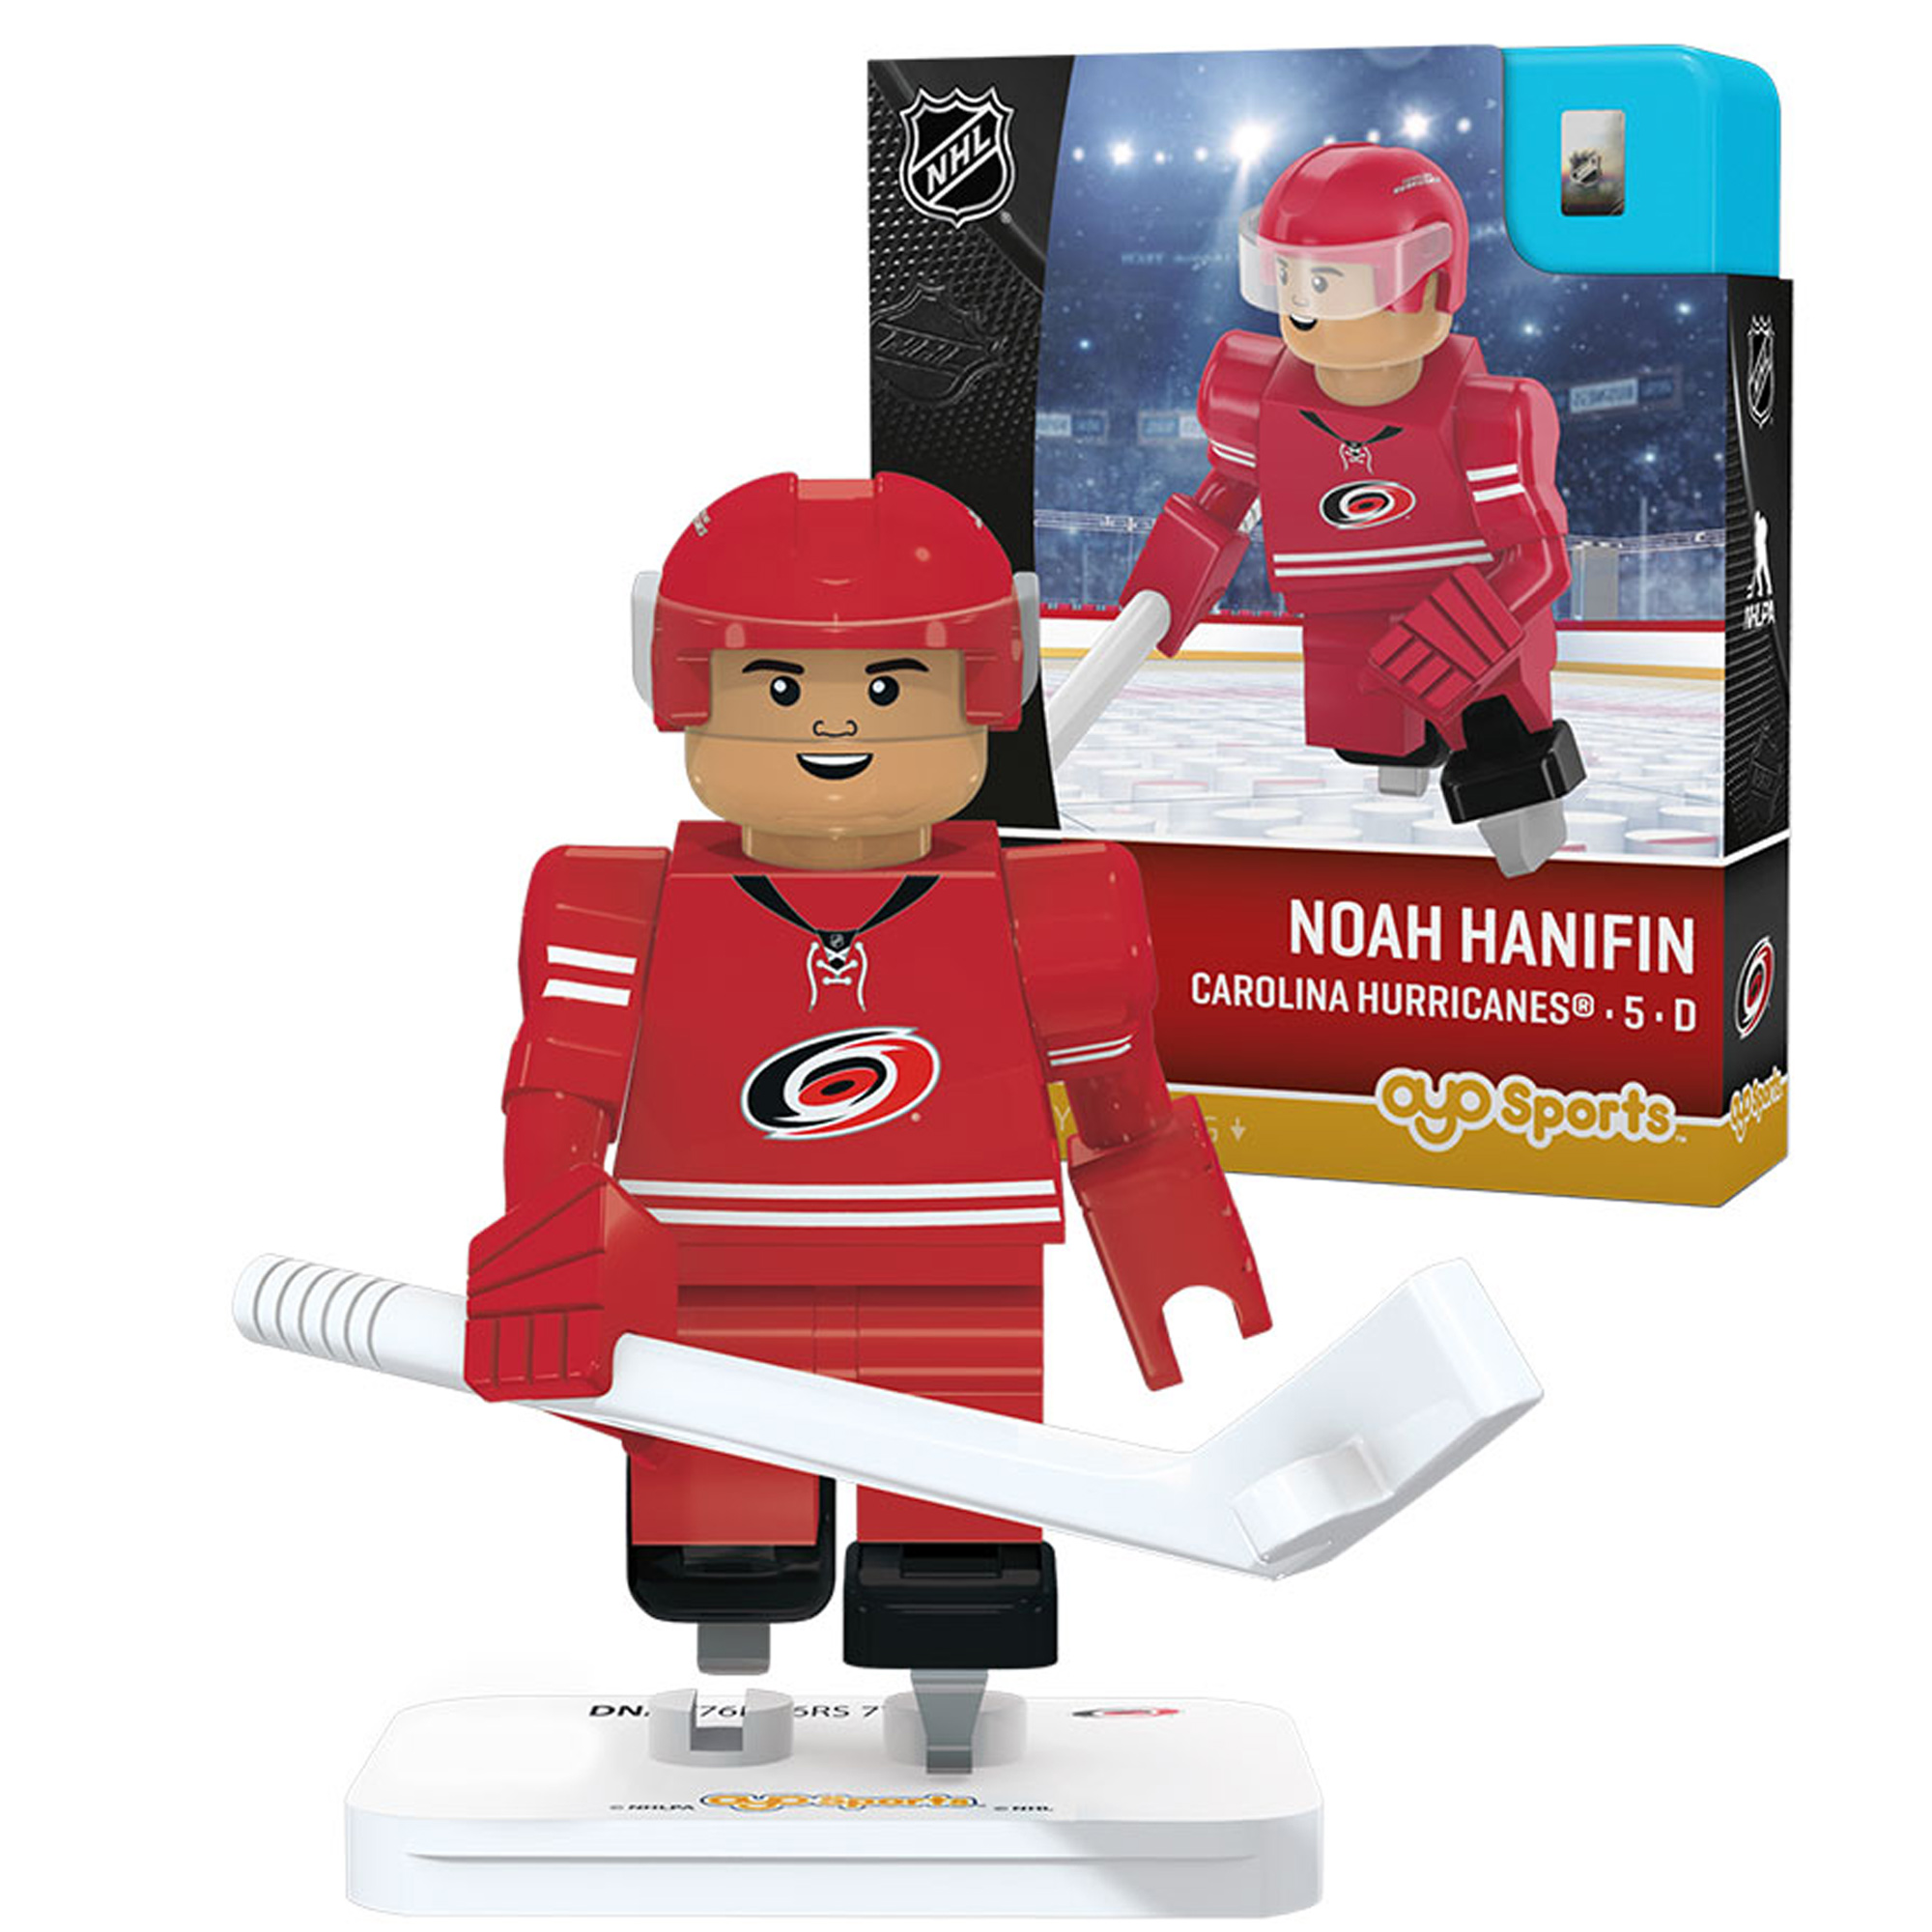 Noah Hanifin Carolina Hurricanes OYO Sports Player Figurine - No Size